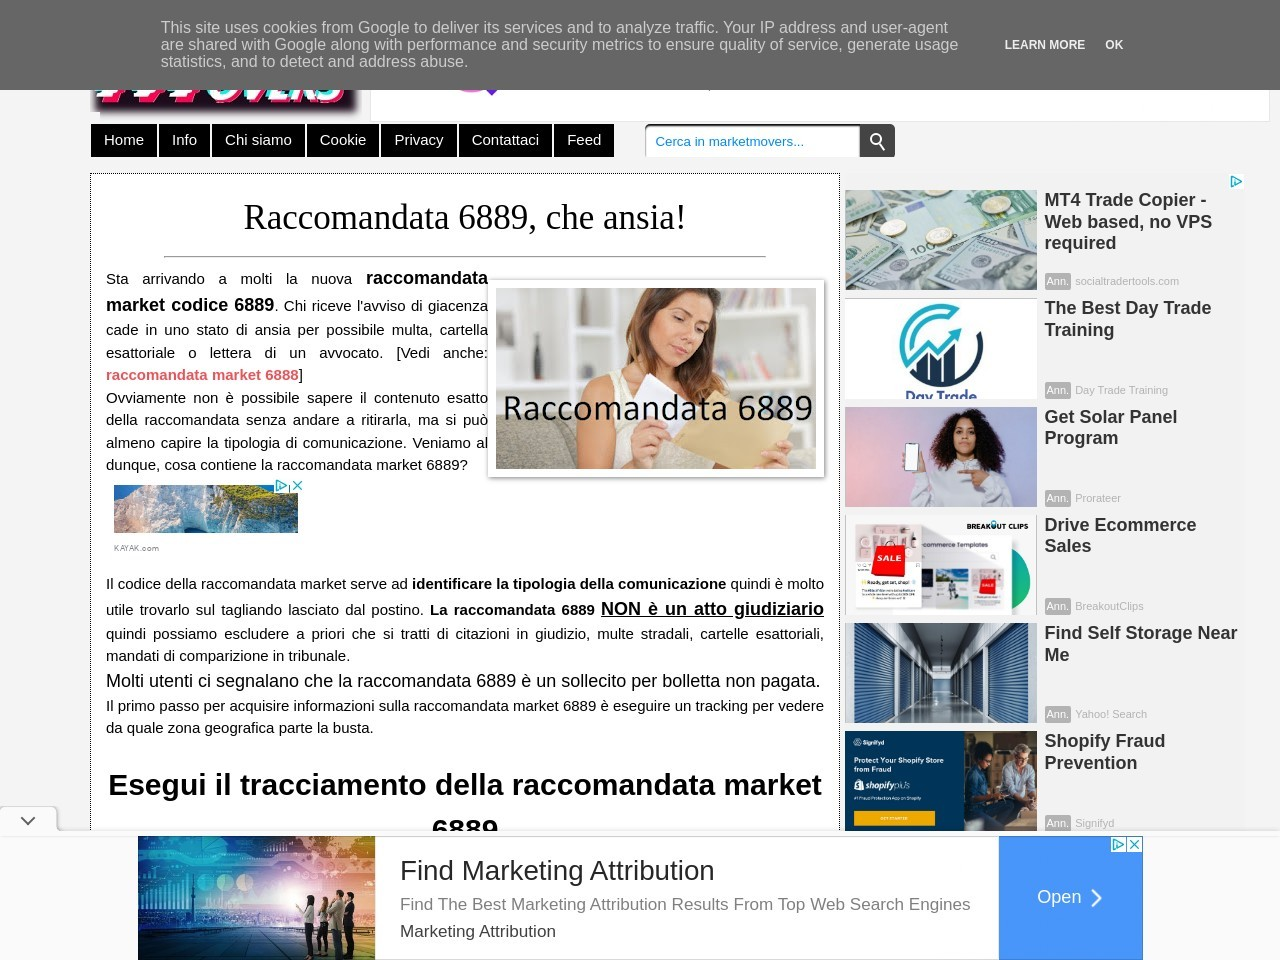 marketmovers-it-borsa-e-finanza